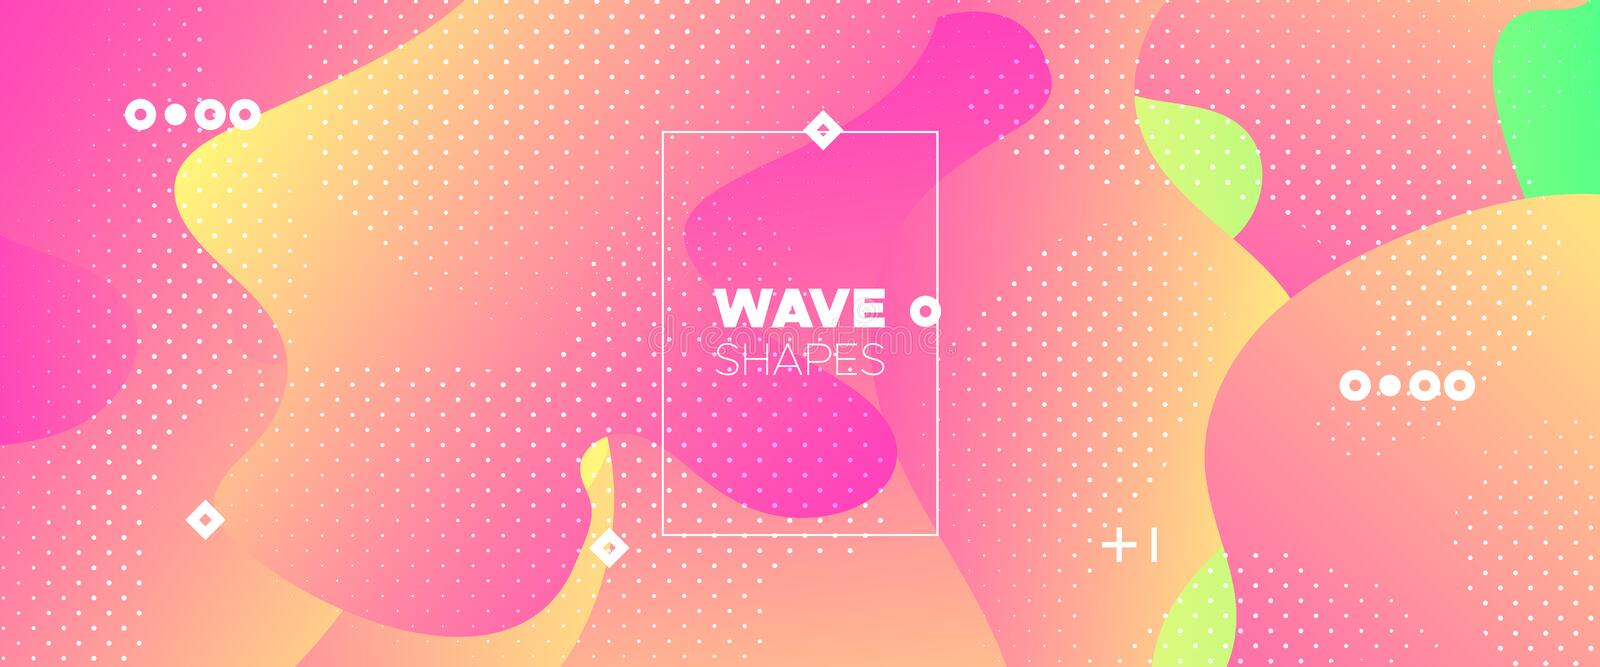 Abstract Flow Design. Vivid Minimal Brochure. Pastel Graphic Movement. Digital Template. Abstract Fluid Pattern. Minimal Poster. Graphic Wallpaper. Futuristic royalty free illustration